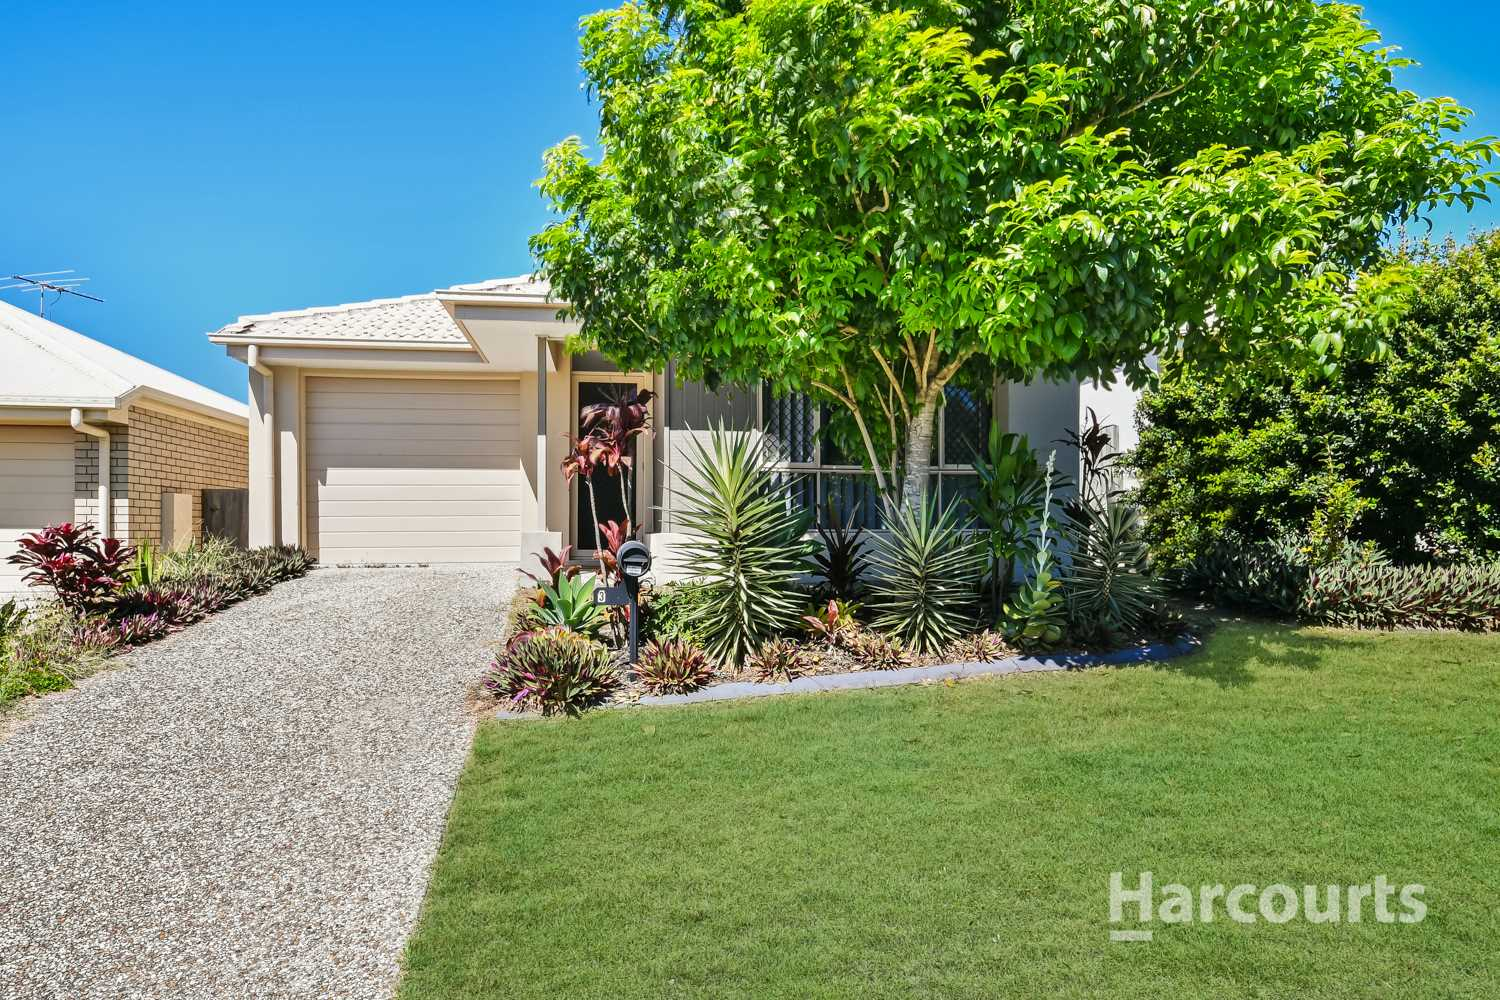 Low maintenance home in central location